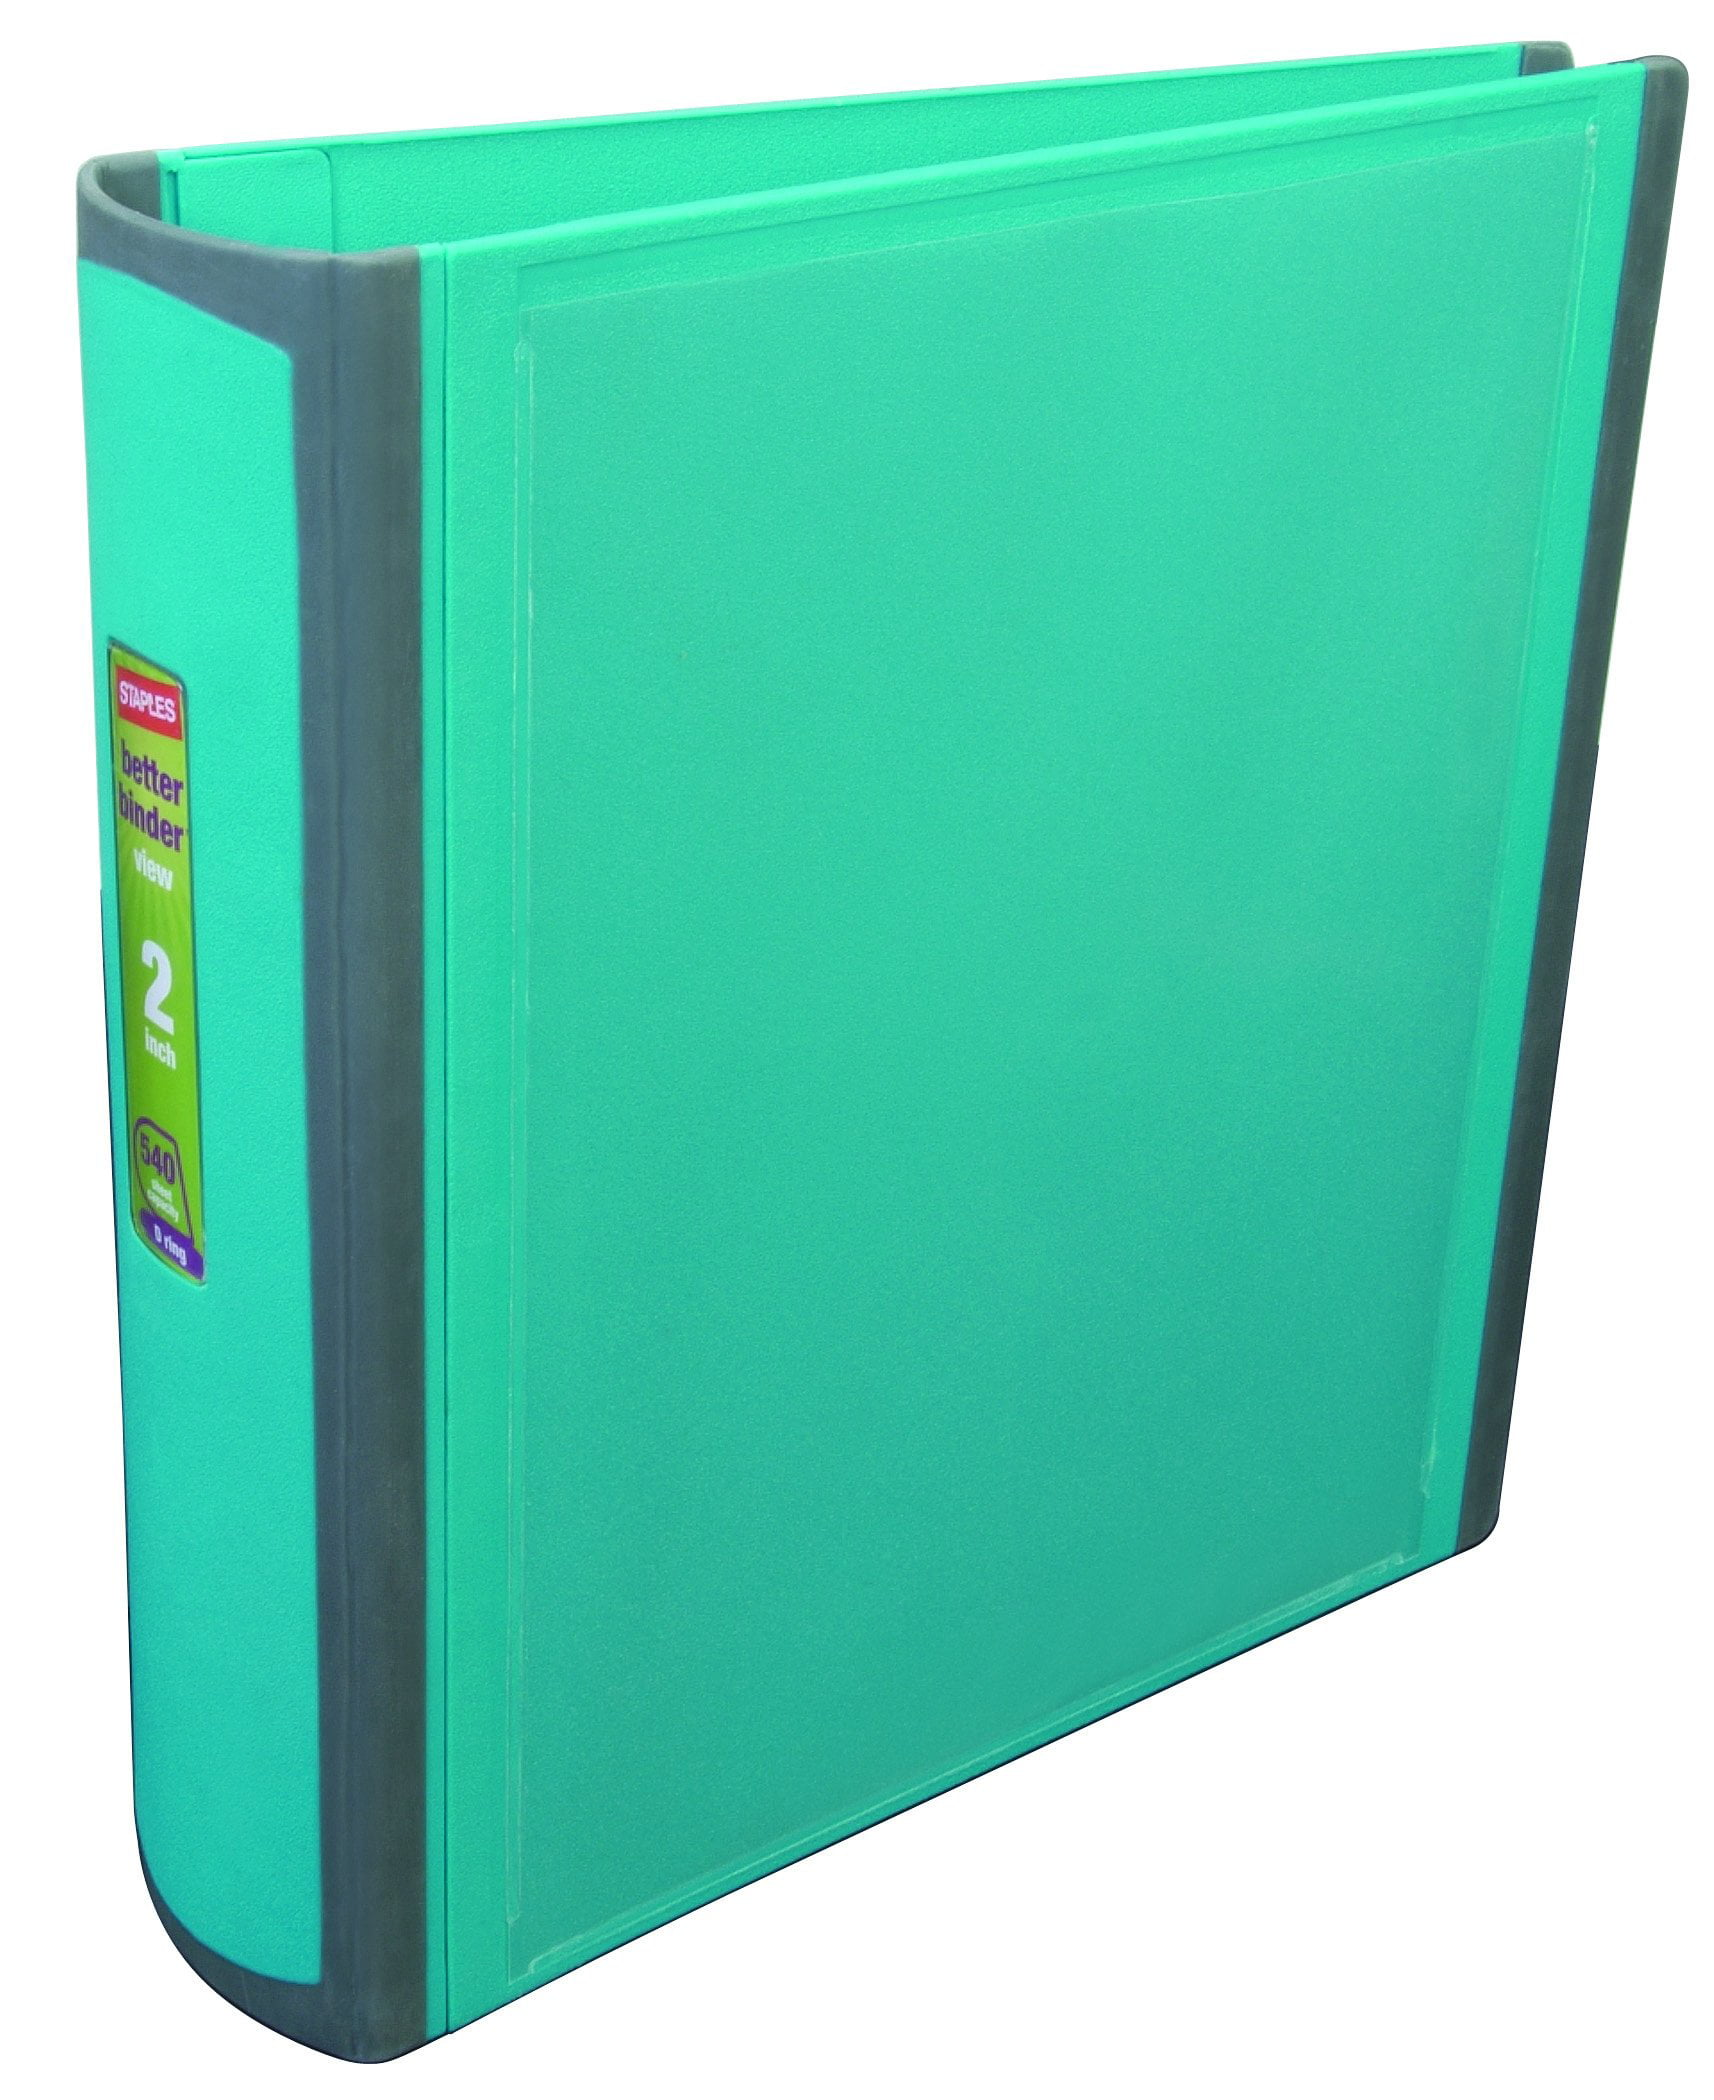 staples better 2 inch d 3 ring view binder teal 13470 cc